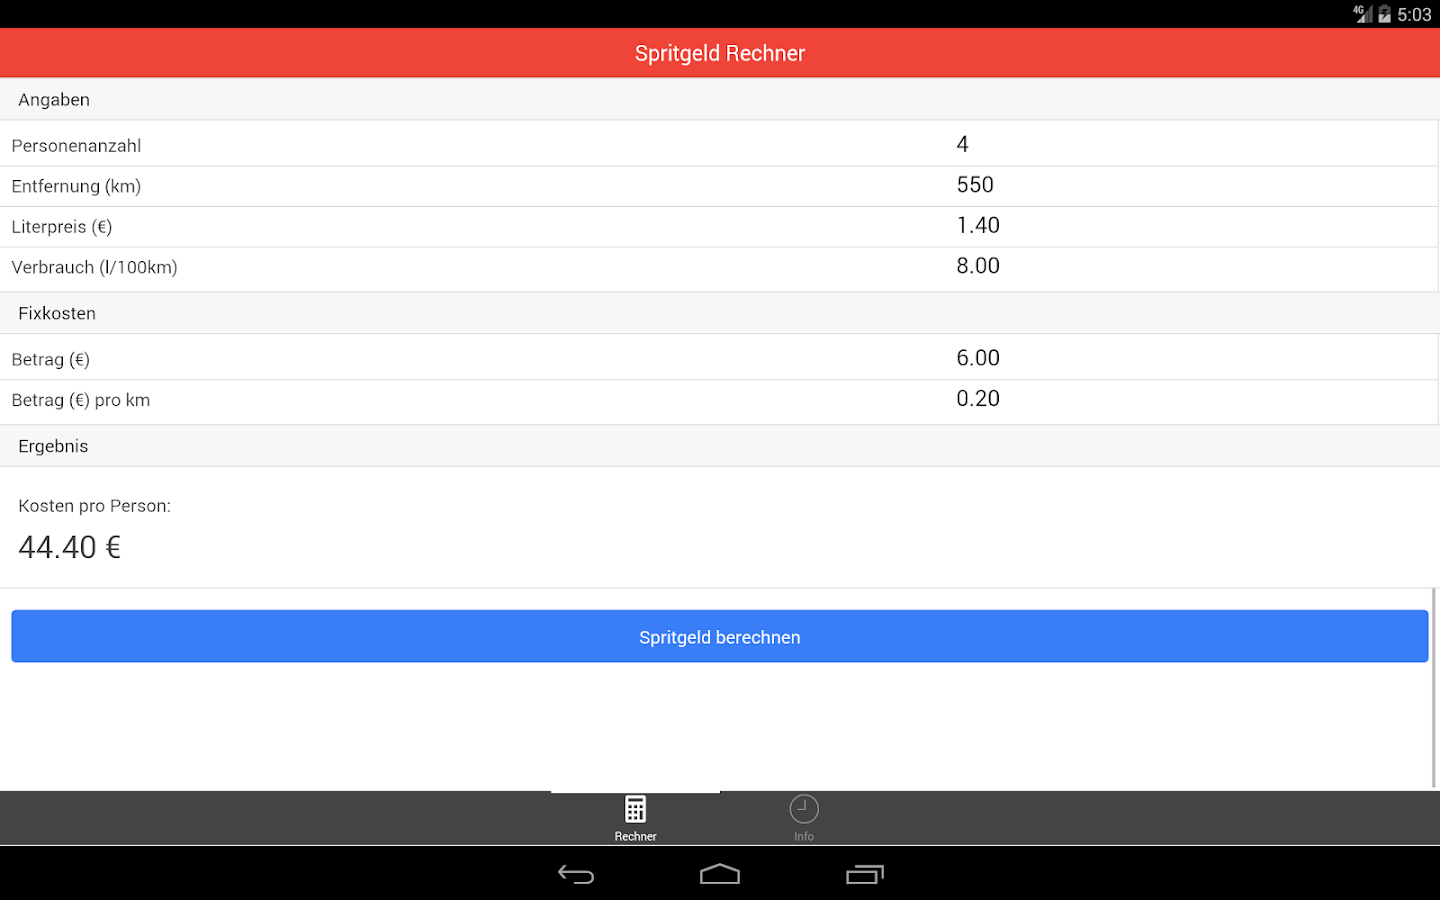 spritgeld rechner android apps on google play